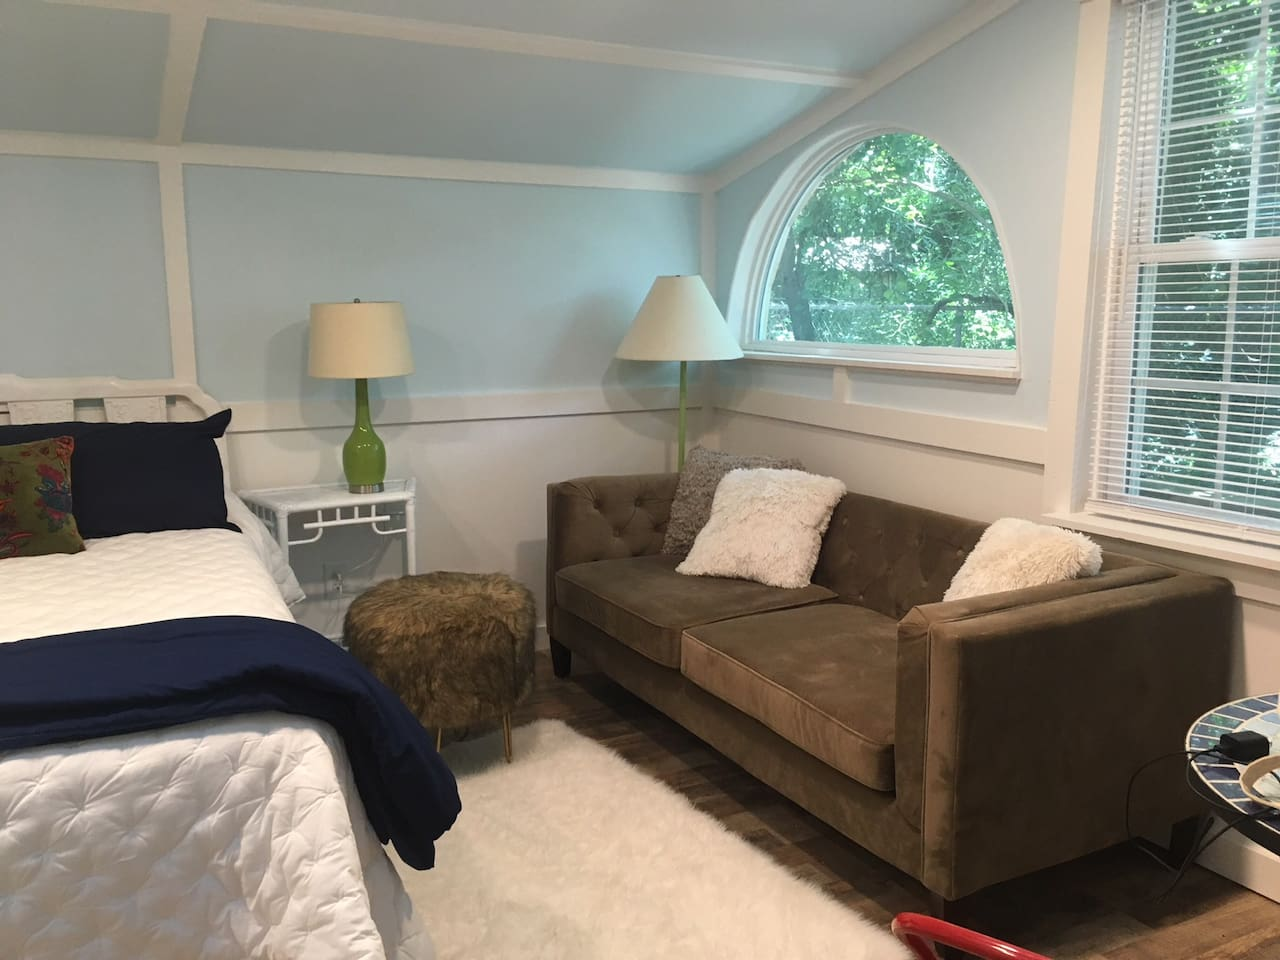 Sunny Bedroom with couch